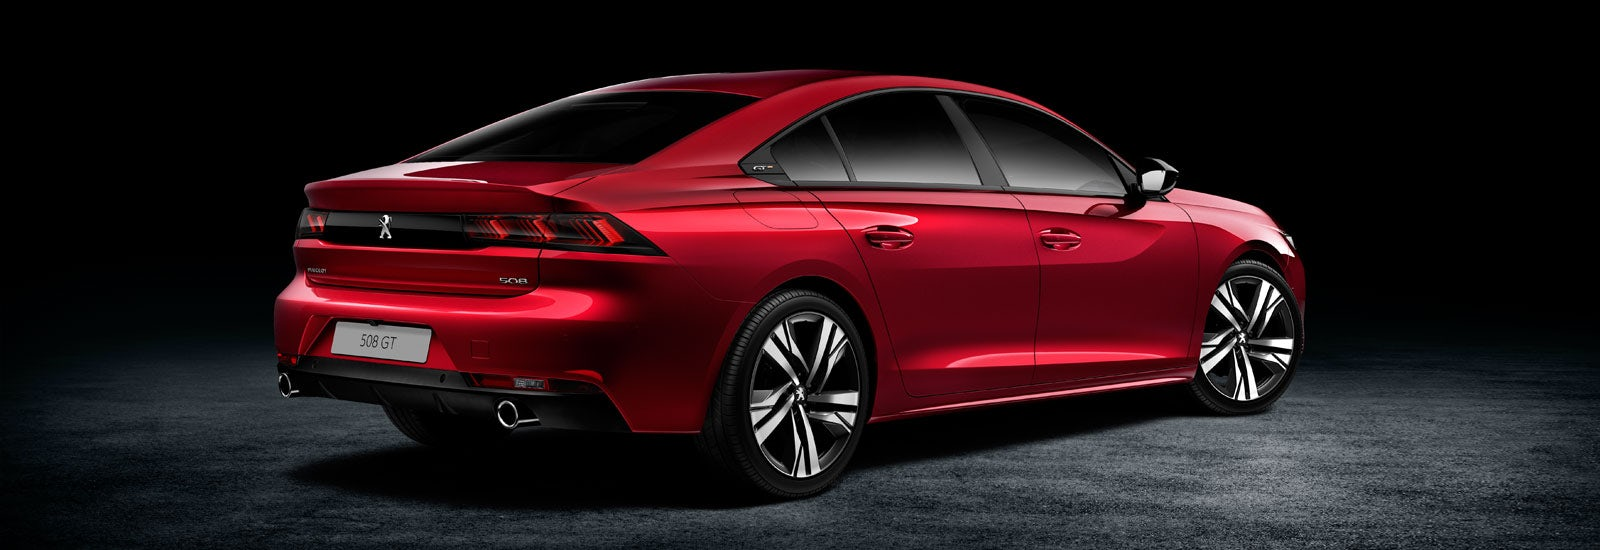 2019 Peugeot 508 price, specs and release date | carwow